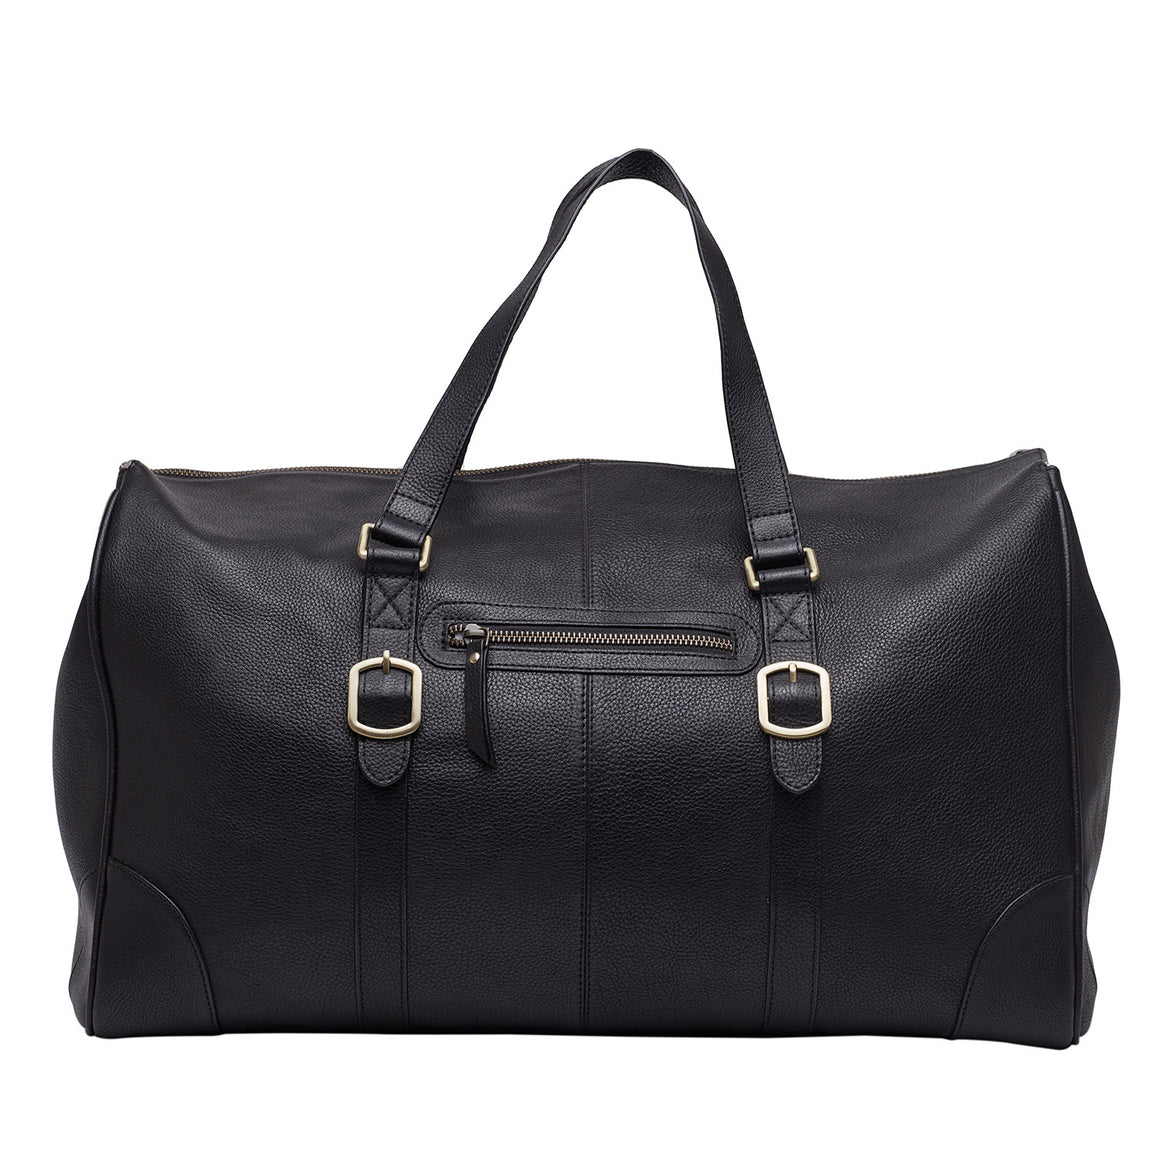 DL 0003 - TOHL PONTE MEN'S DUFFLE BAG - CHARCOAL BLACK